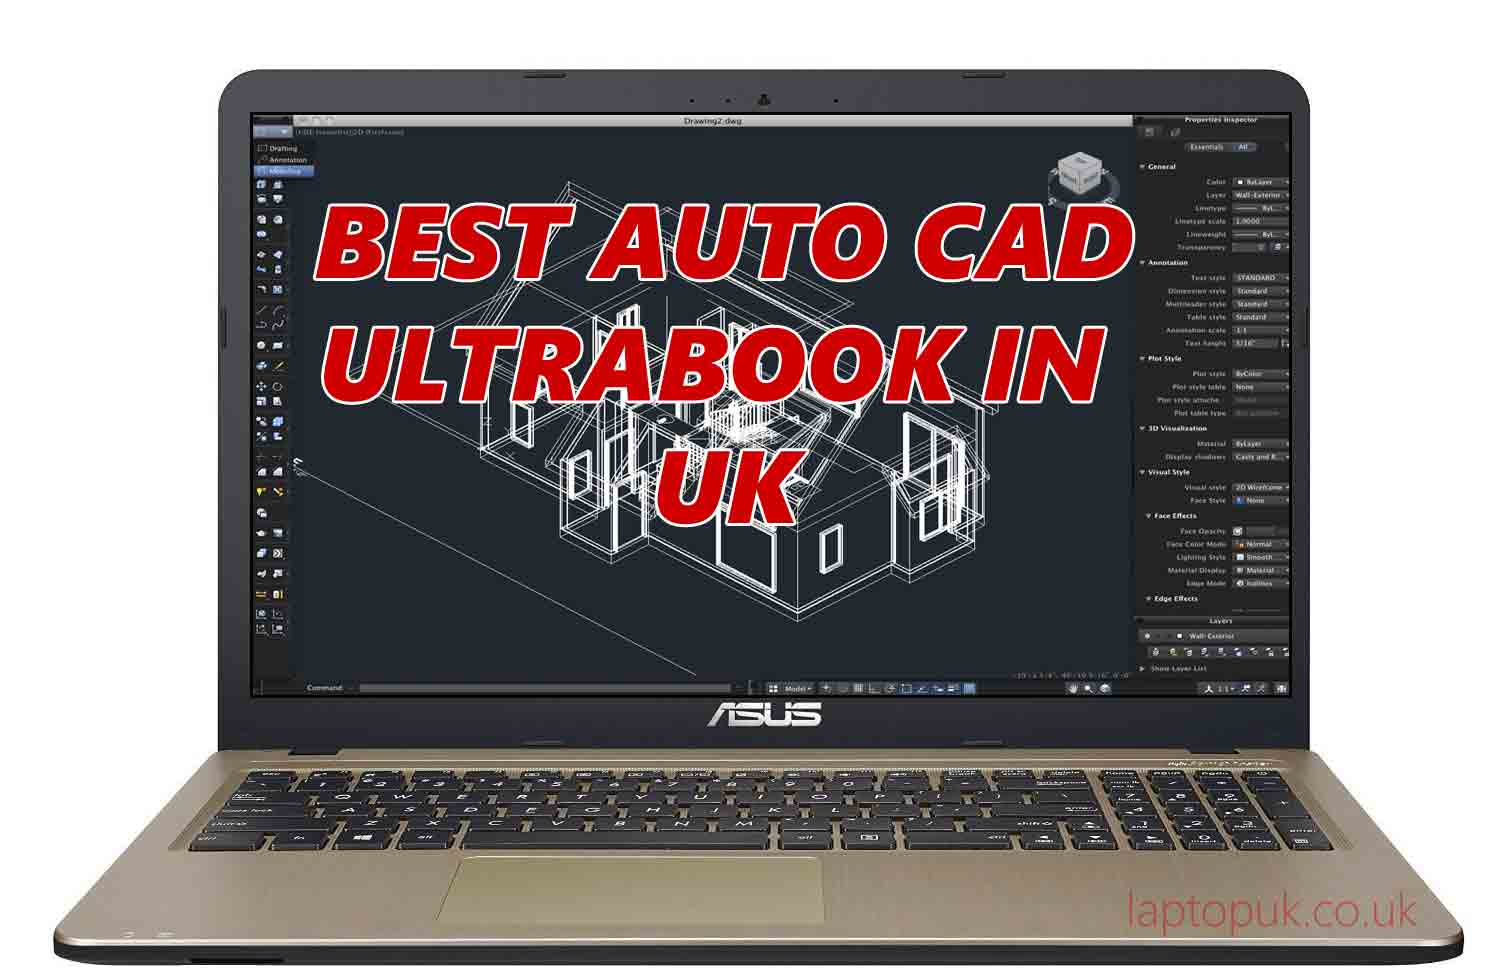 best laptop for autocad in UK 2020